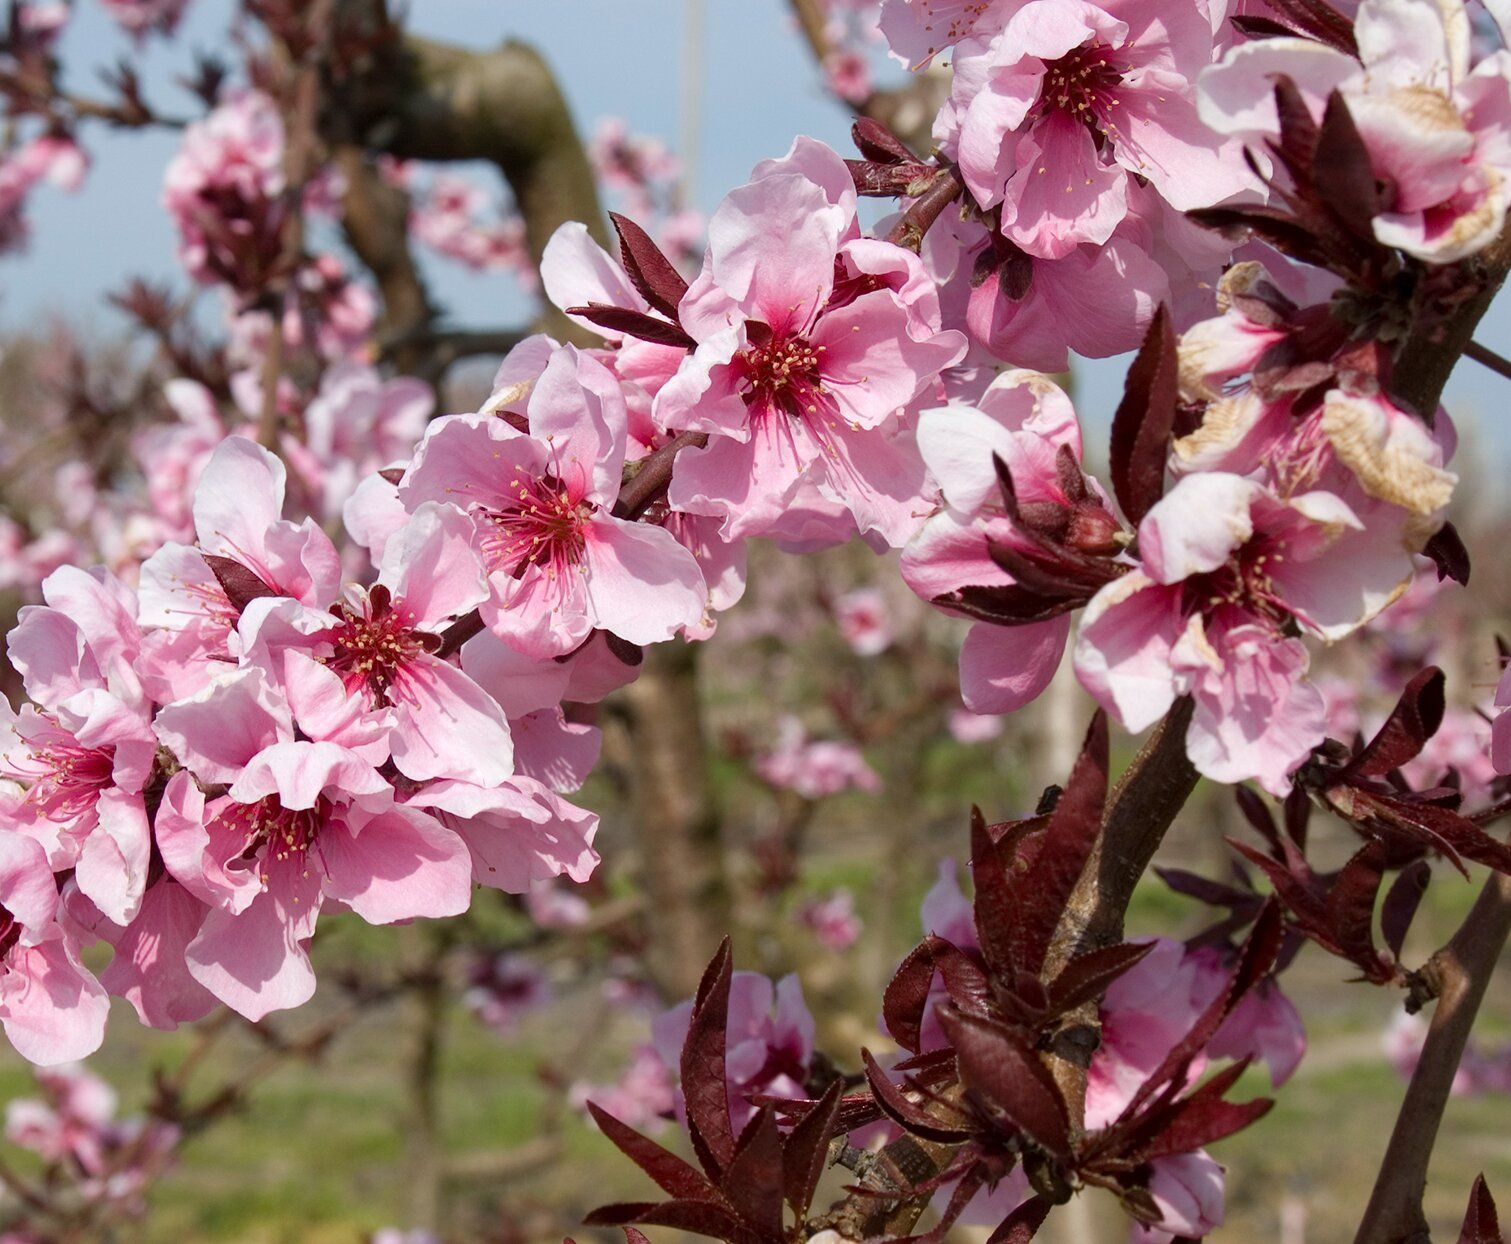 You Can T Buy Nectaplums At The Store But You Can Grow Them Almost Anywhere Pink Fruit Fruit Trees Growing Tree